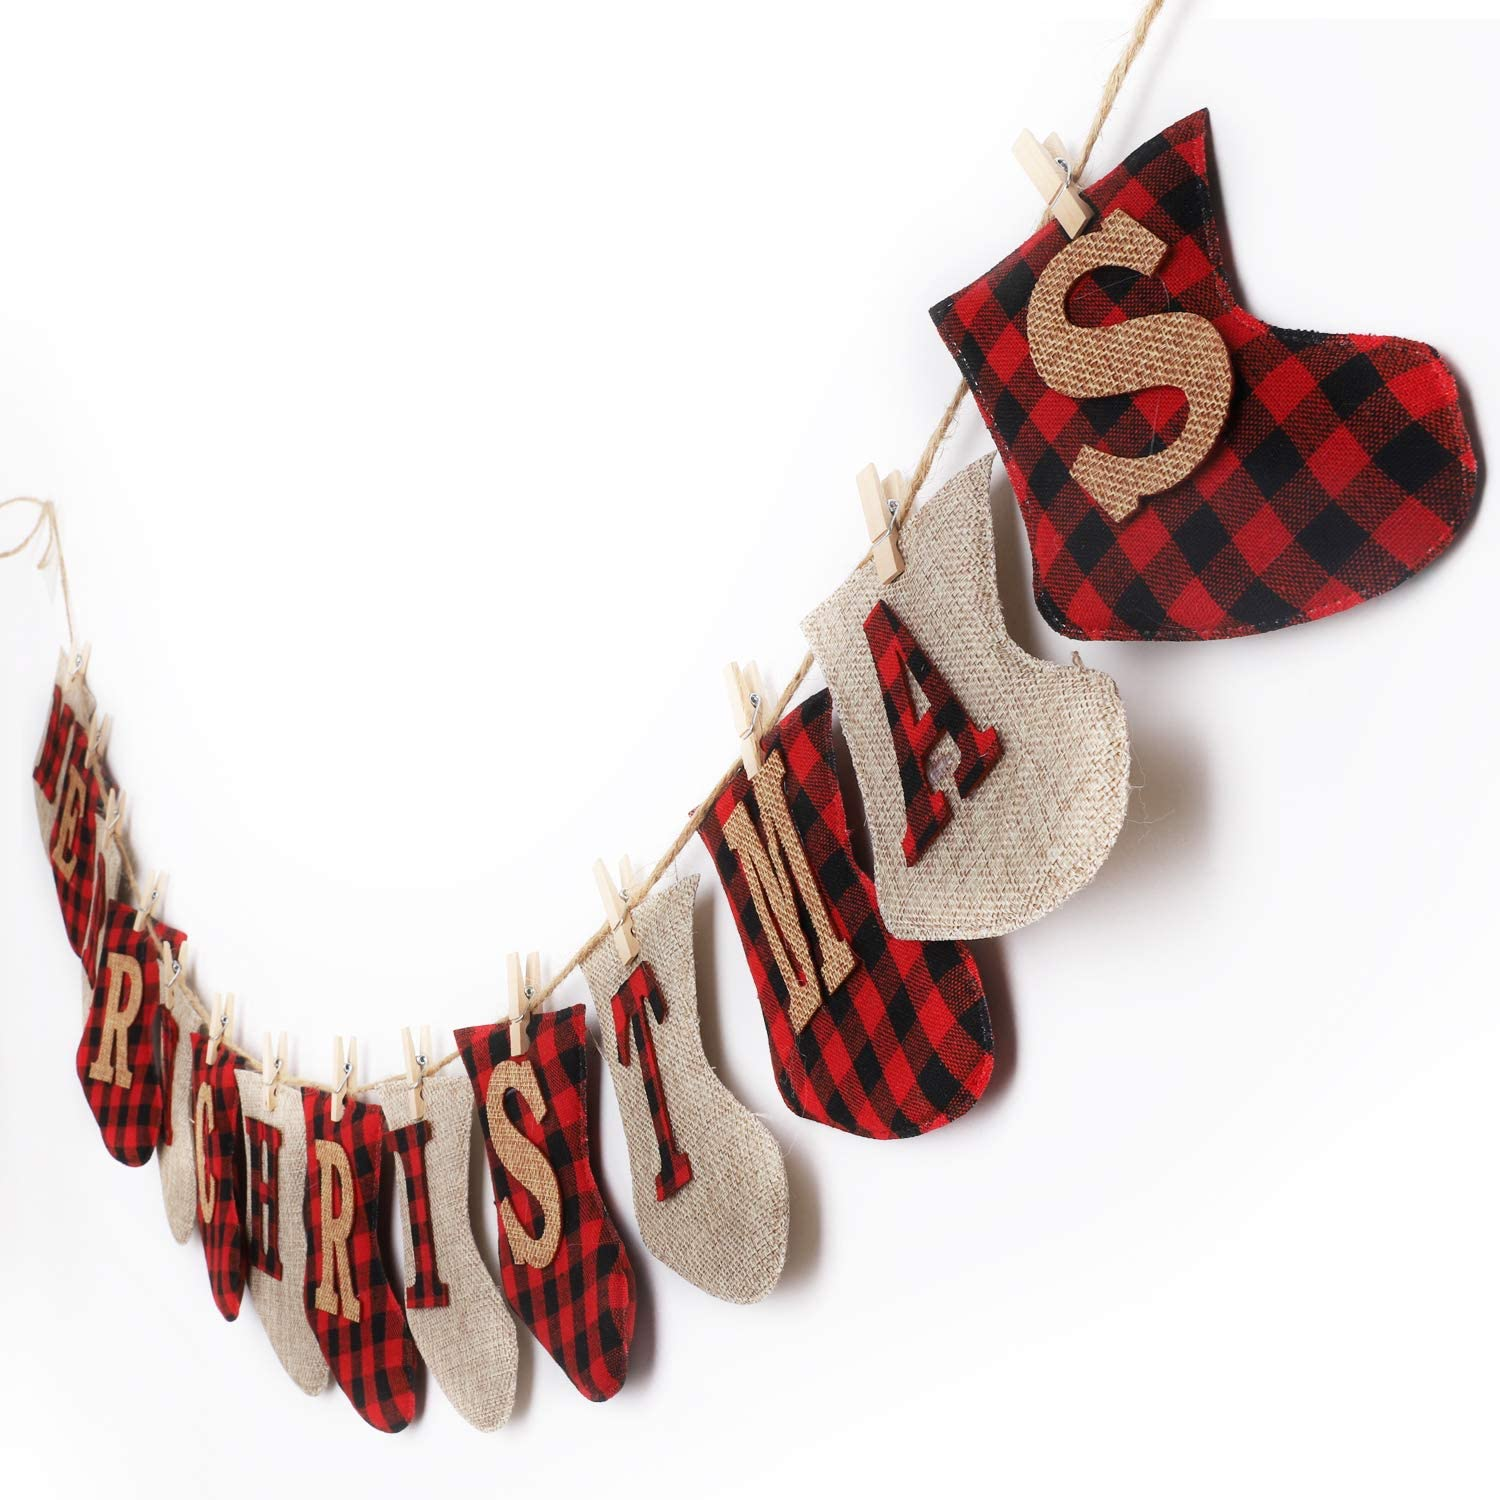 Merry Christmas Banner - Burlap Sock Shaped Christmas Decoration, Unique Hand-Sewn Christmas Decor, Great for Fireplace Wall Tree Wall Garden Indoor Outdoor Christmas Banner